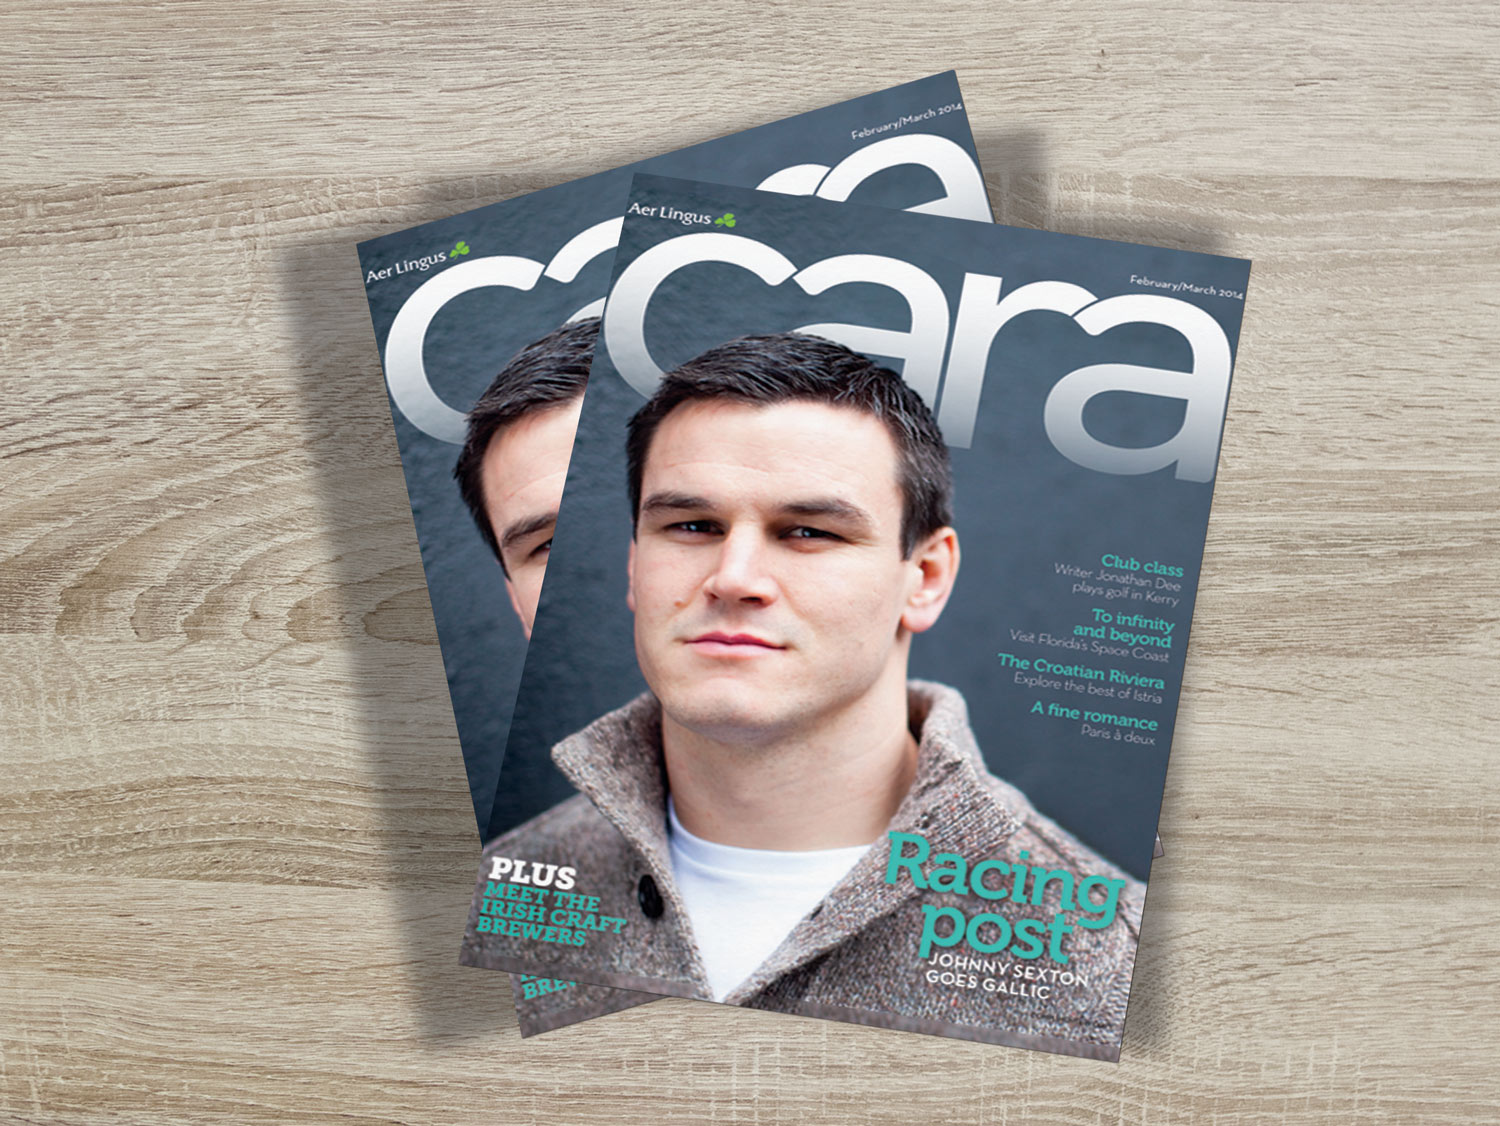 Cara Aerlingus Magazine Cover